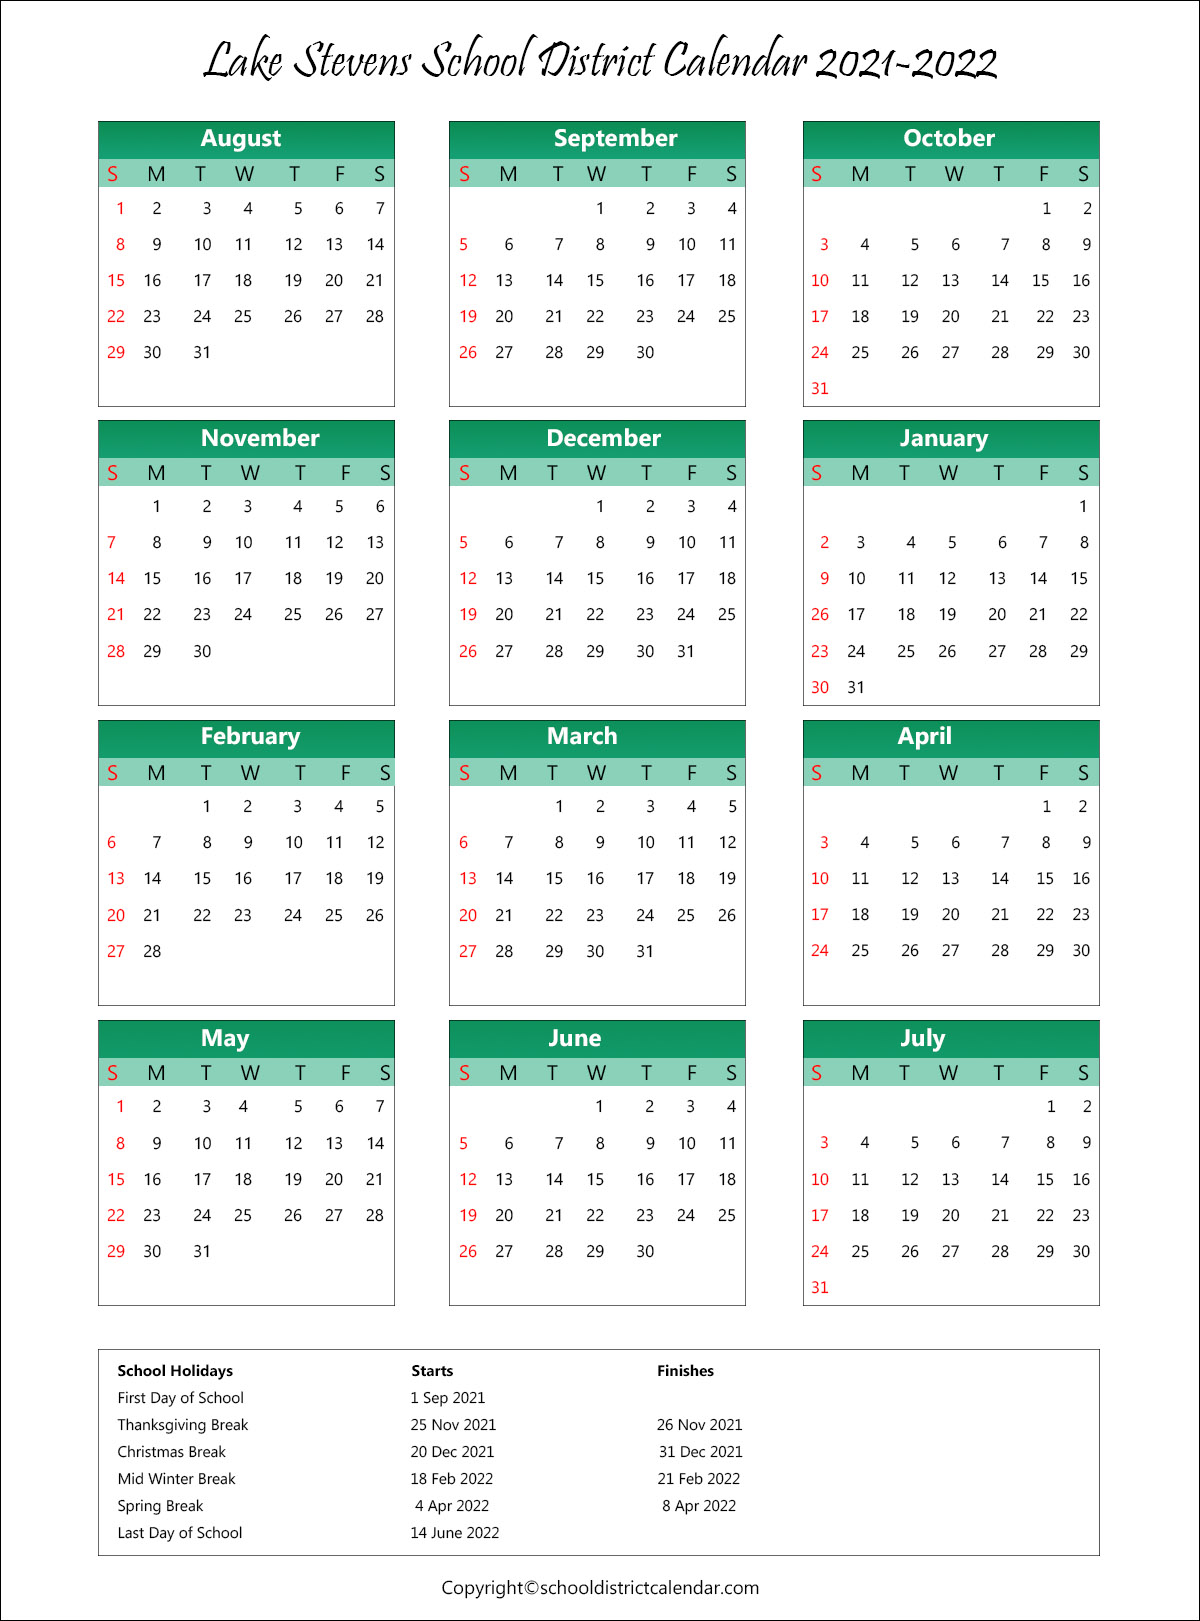 Lake Stevens School District, Washington Calendar Holidays 2021